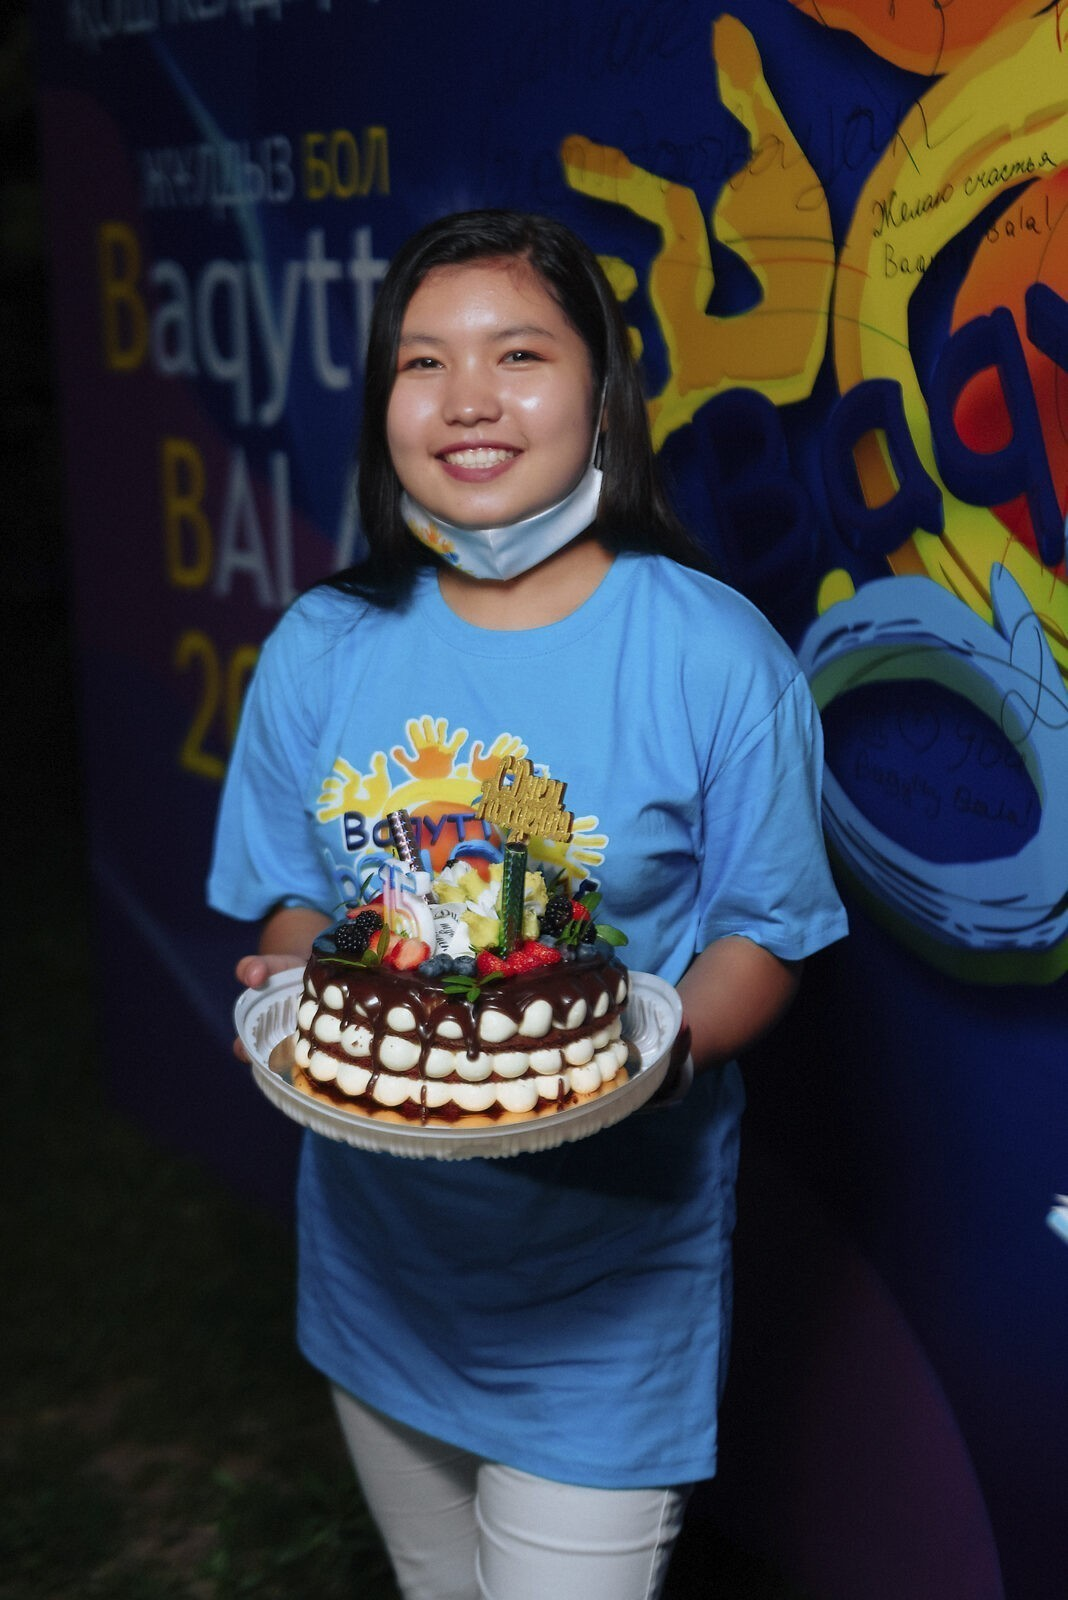 """""""Kazakh hospitality is amazing"""": how the participants of the Baqytty Bala contest were greeted"""